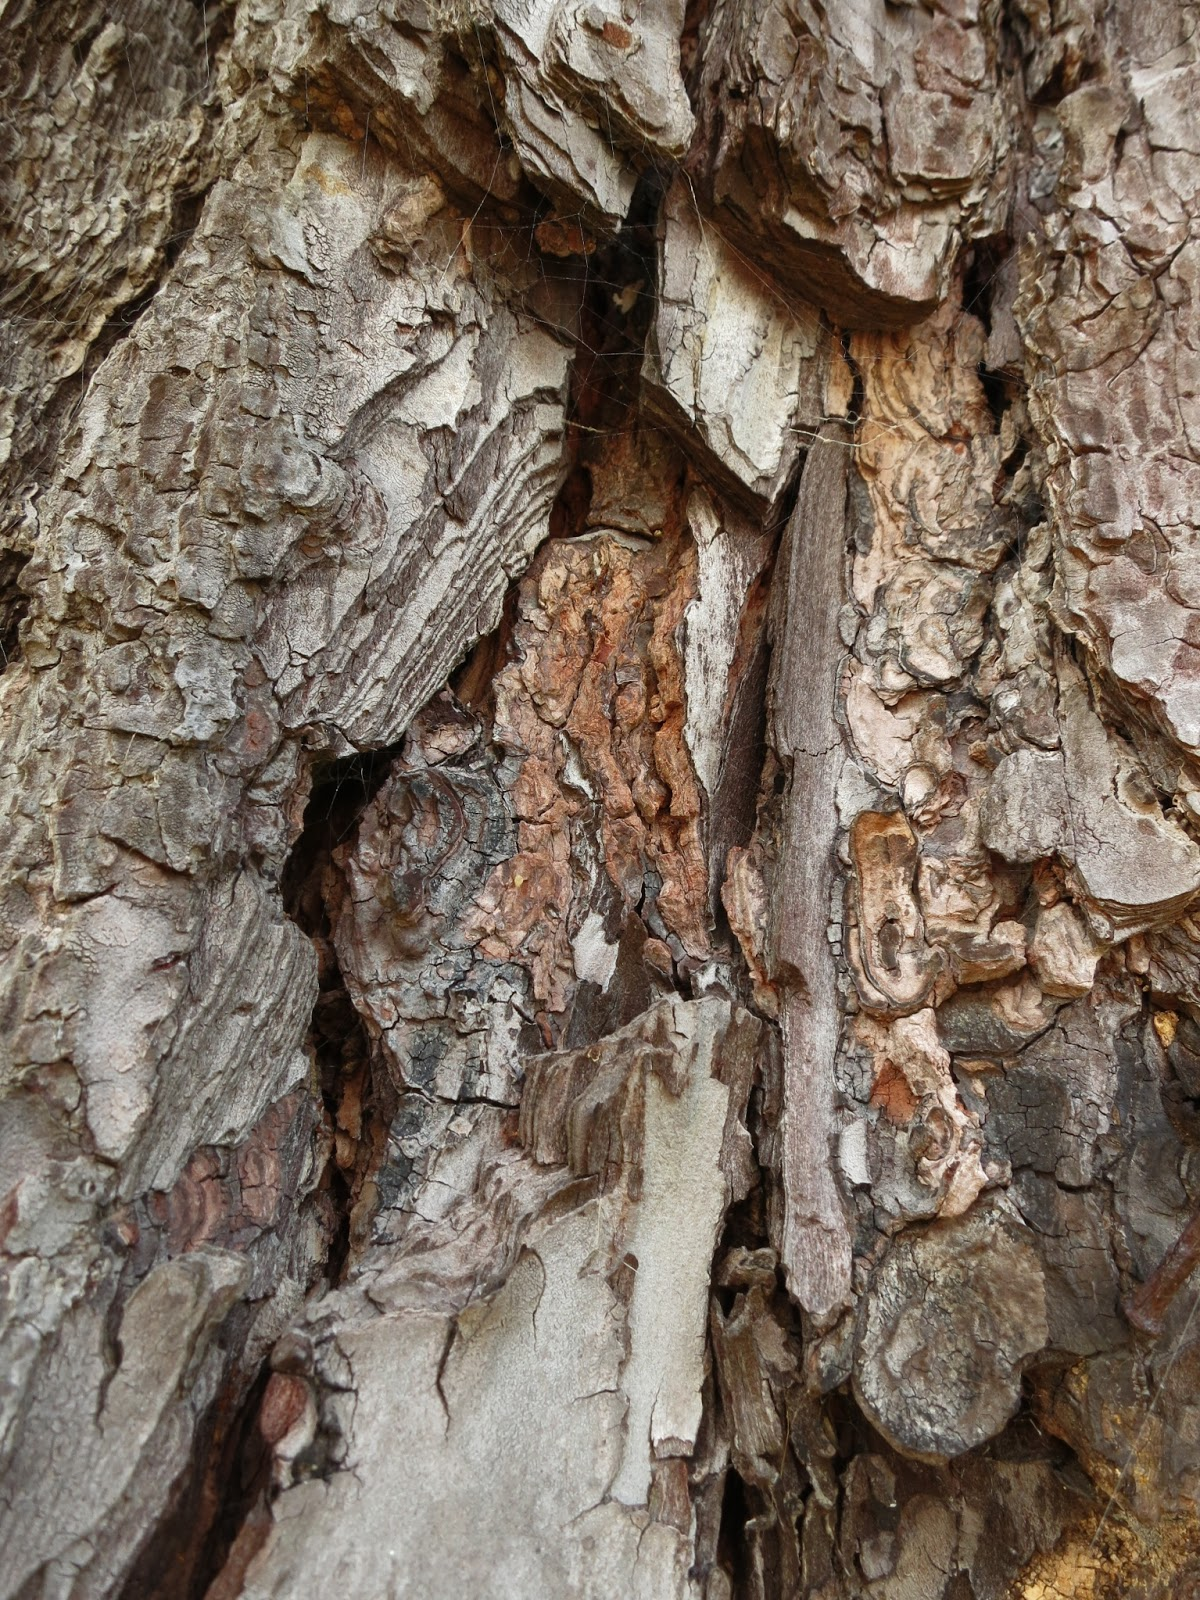 Layers and breaks and colours in bark